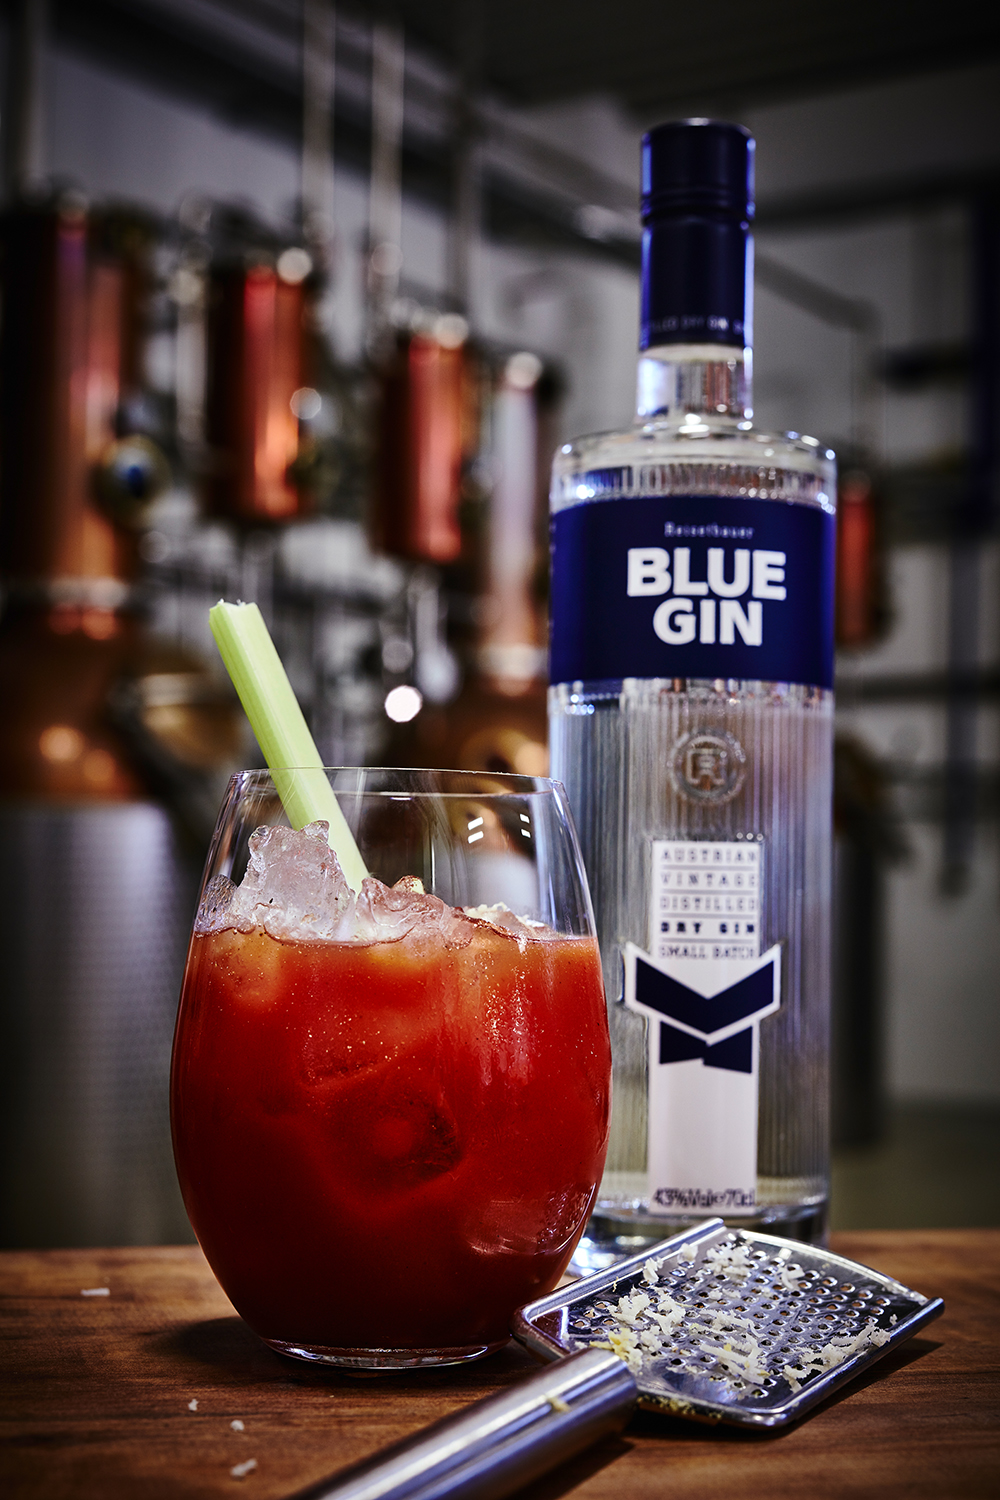 BLUE GIN BLOODY MARY